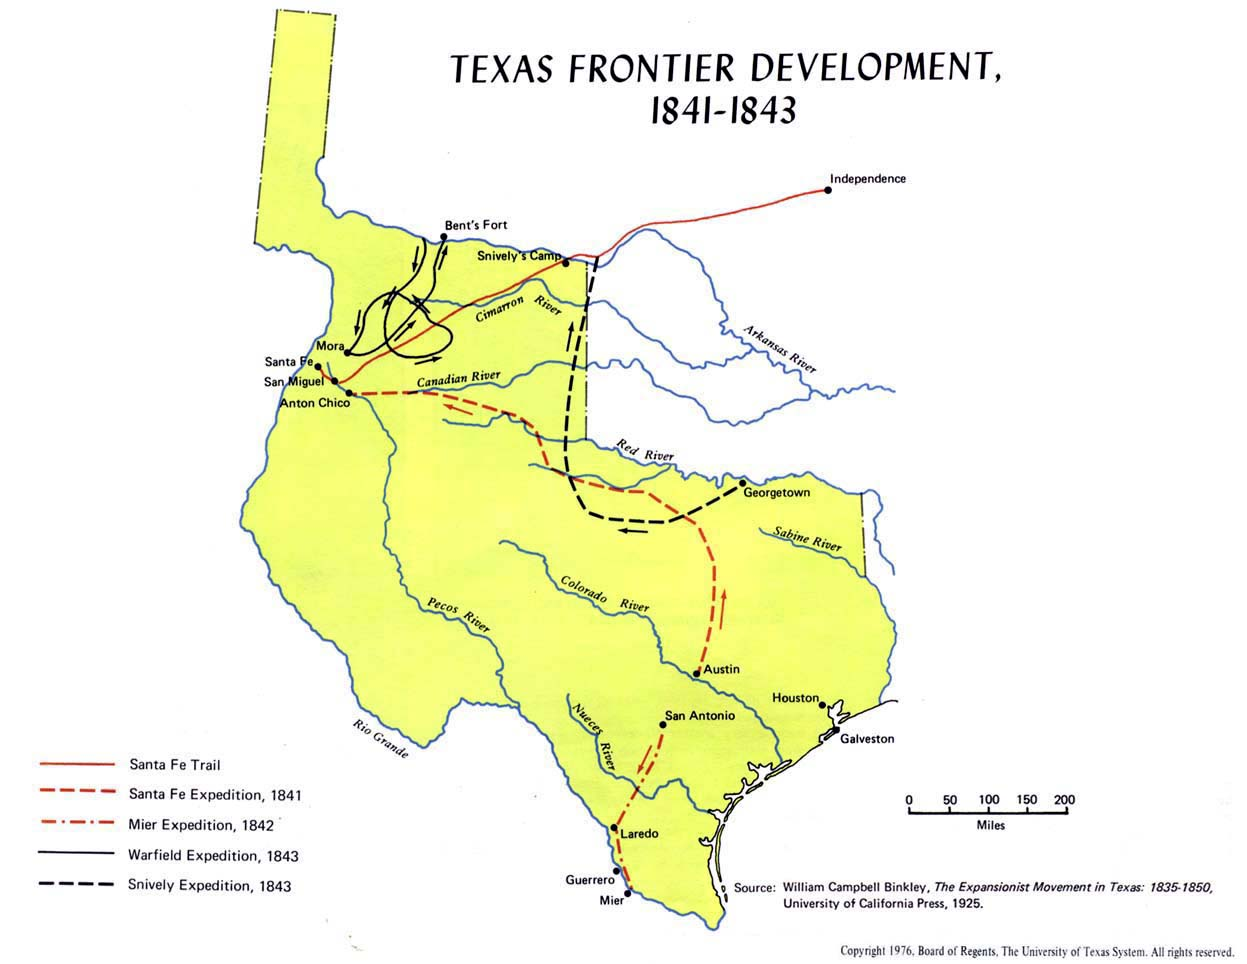 Texas Frontier Development, 1841 - 1843